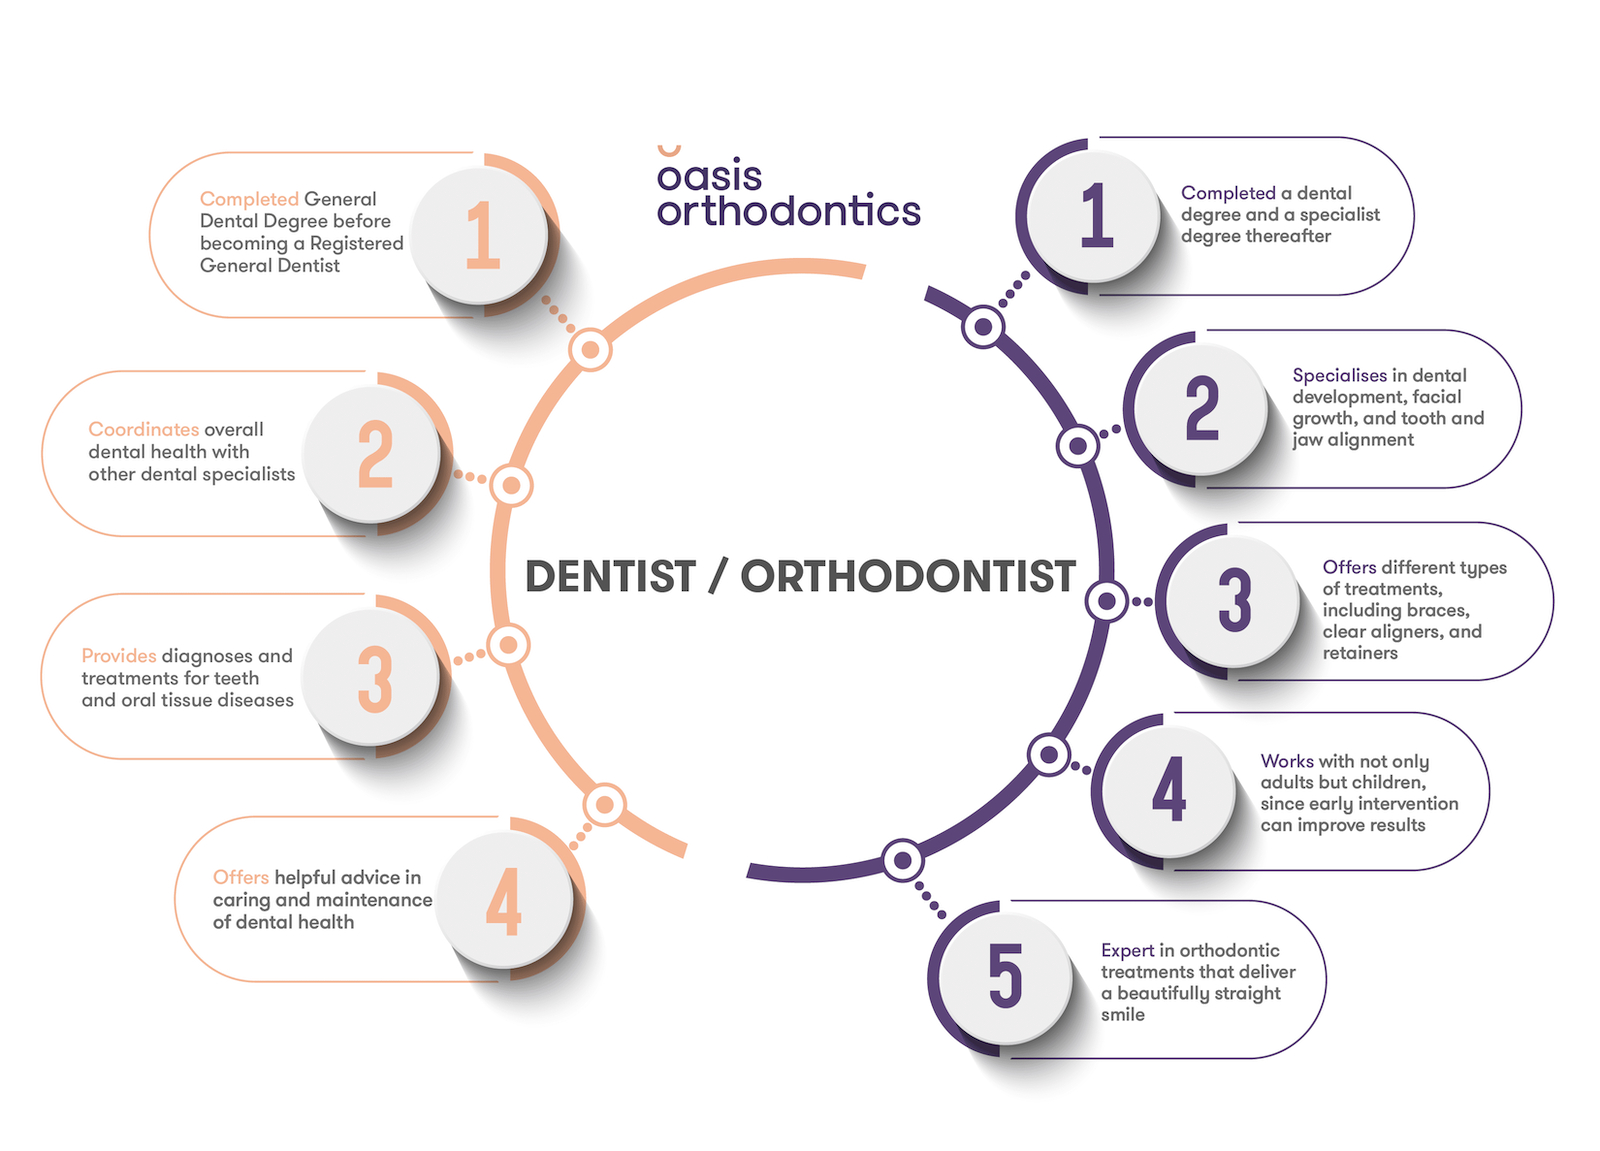 An infographic showing the differences between a Dentist and an Orthodontist.